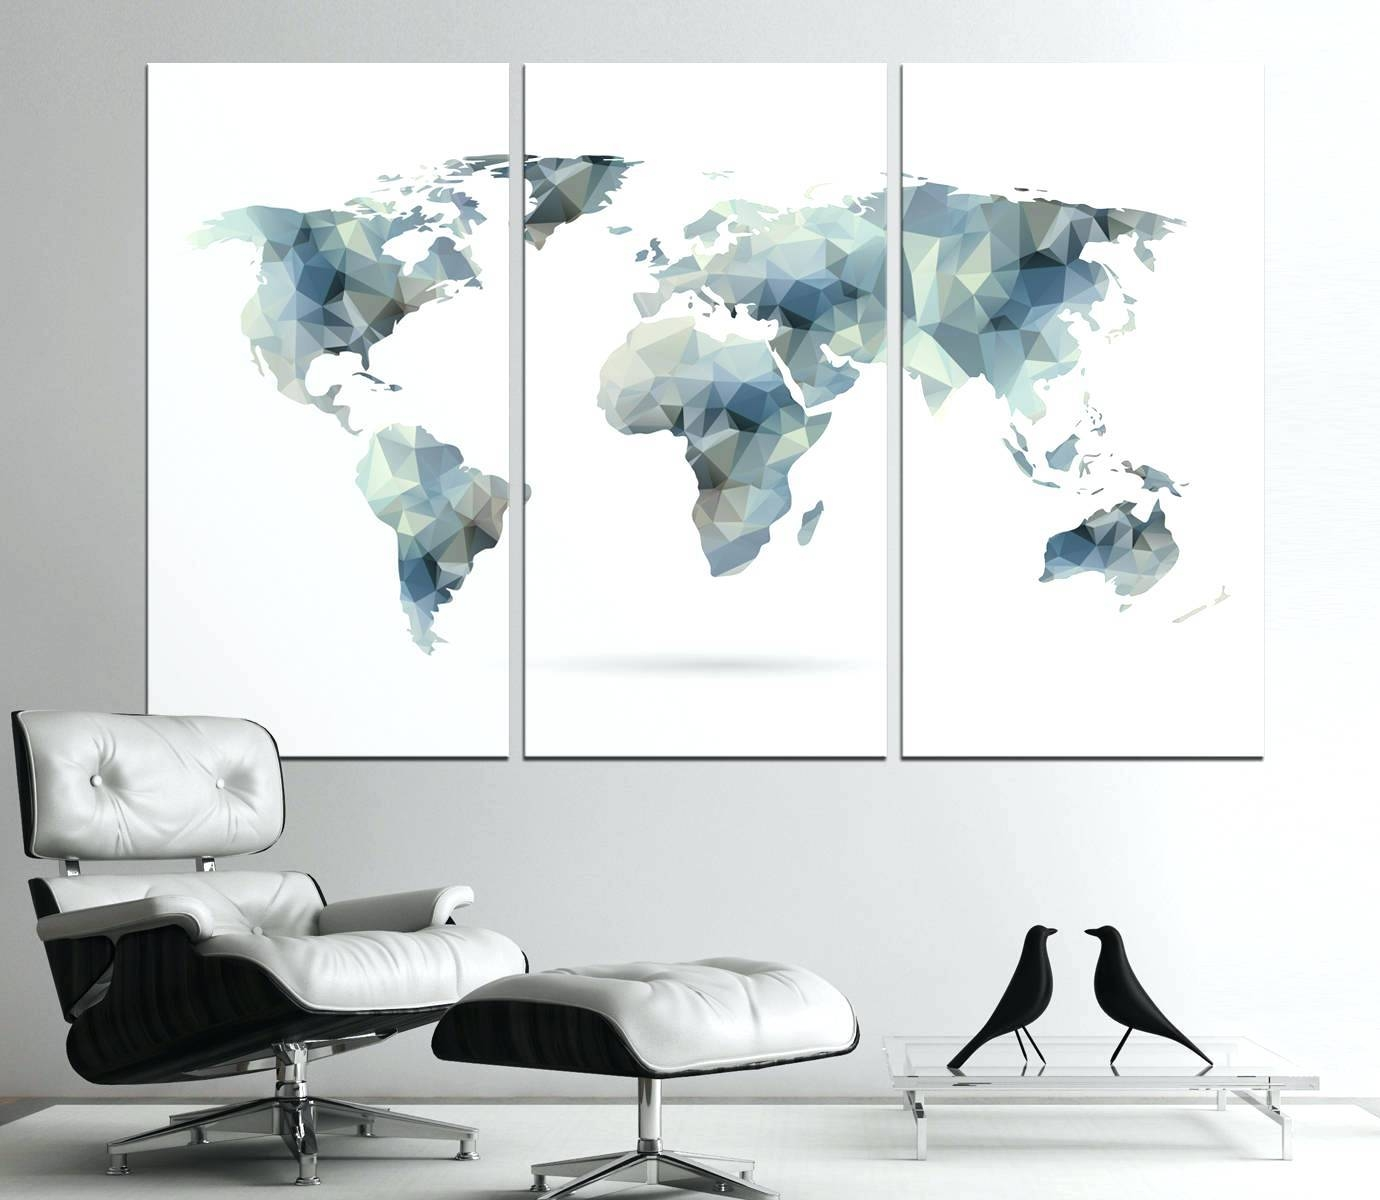 Wall Arts ~ Wall Art For Home Office Large Geometric World Map Inside Best And Newest Large World Map Wall Art (View 20 of 20)